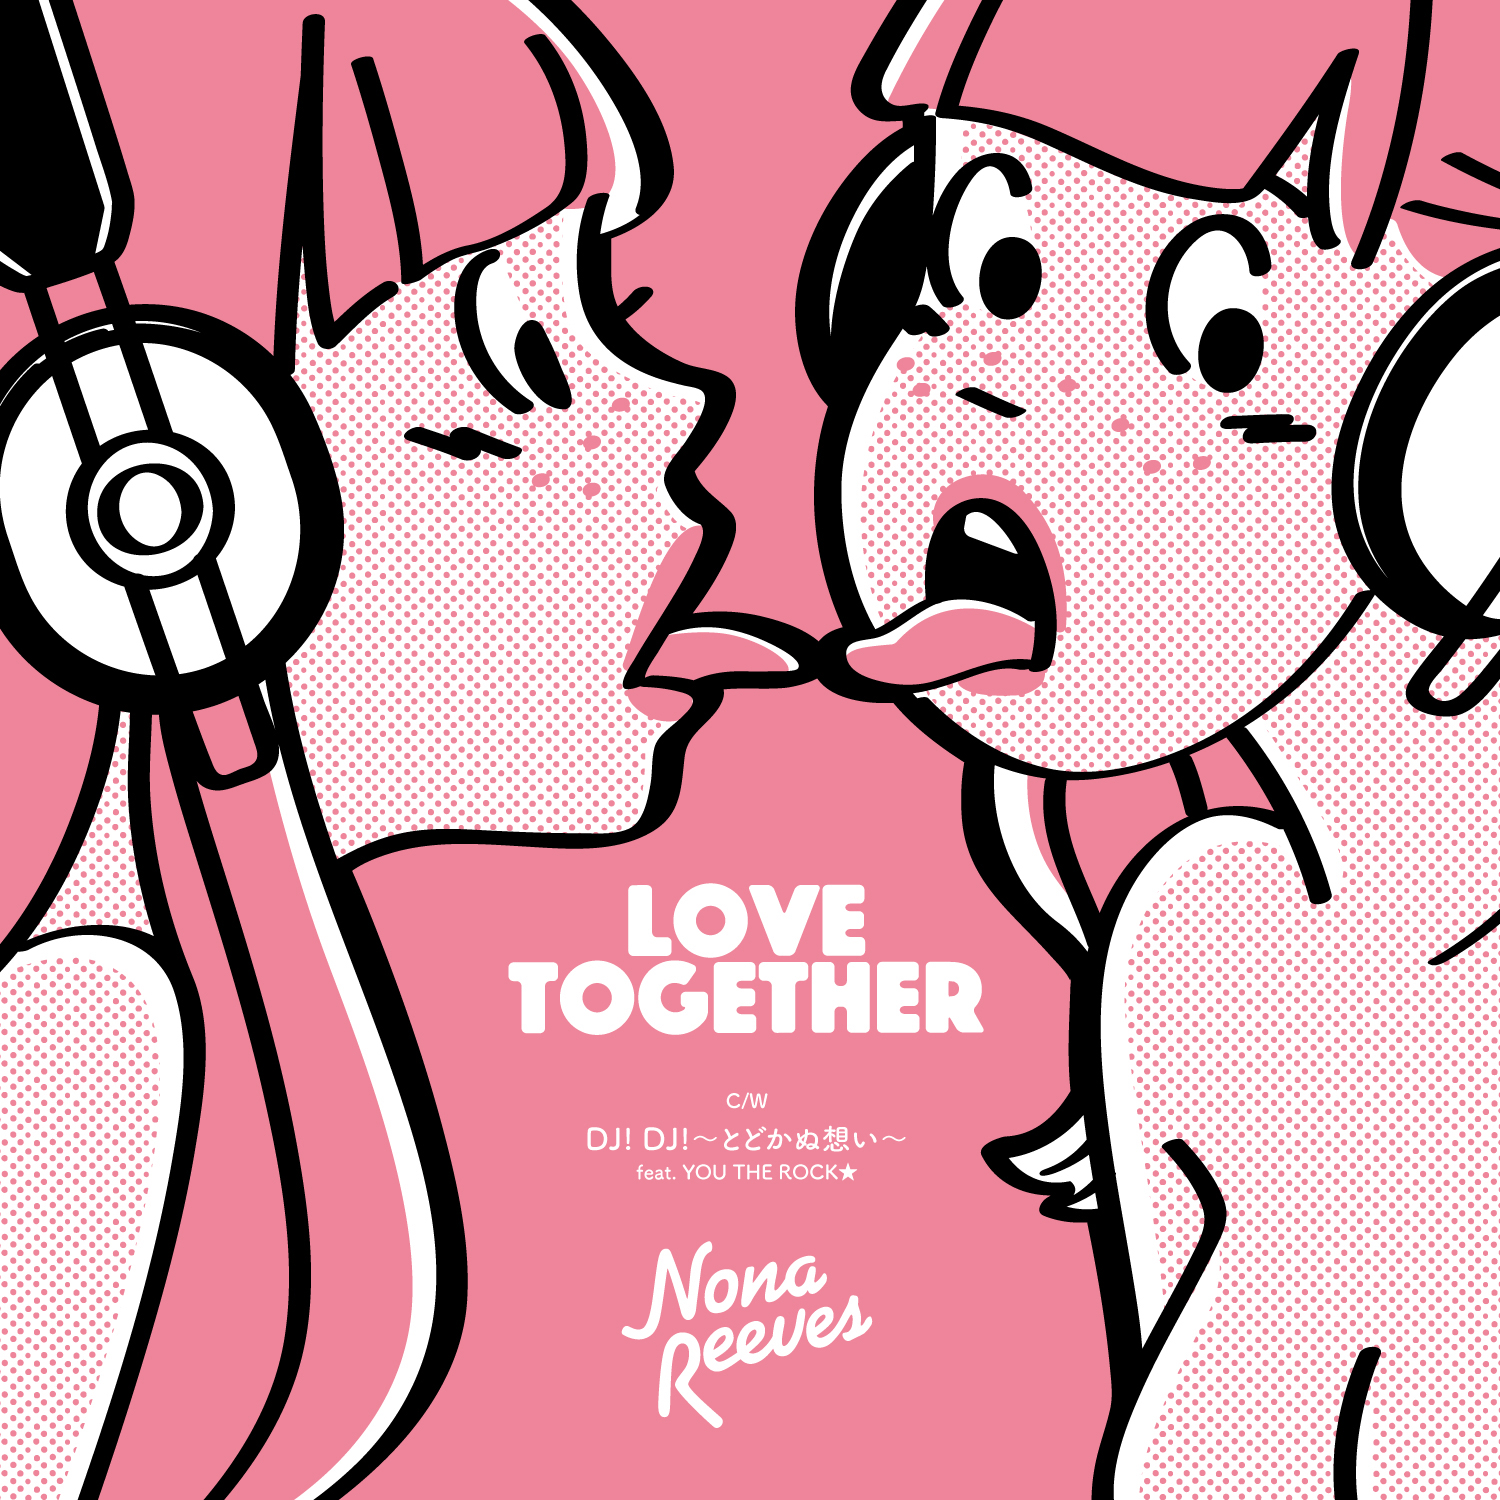 LOVE TOGETHER / DJ! DJ! ~とどかぬ想い~ feat. YOU THE ROCK★